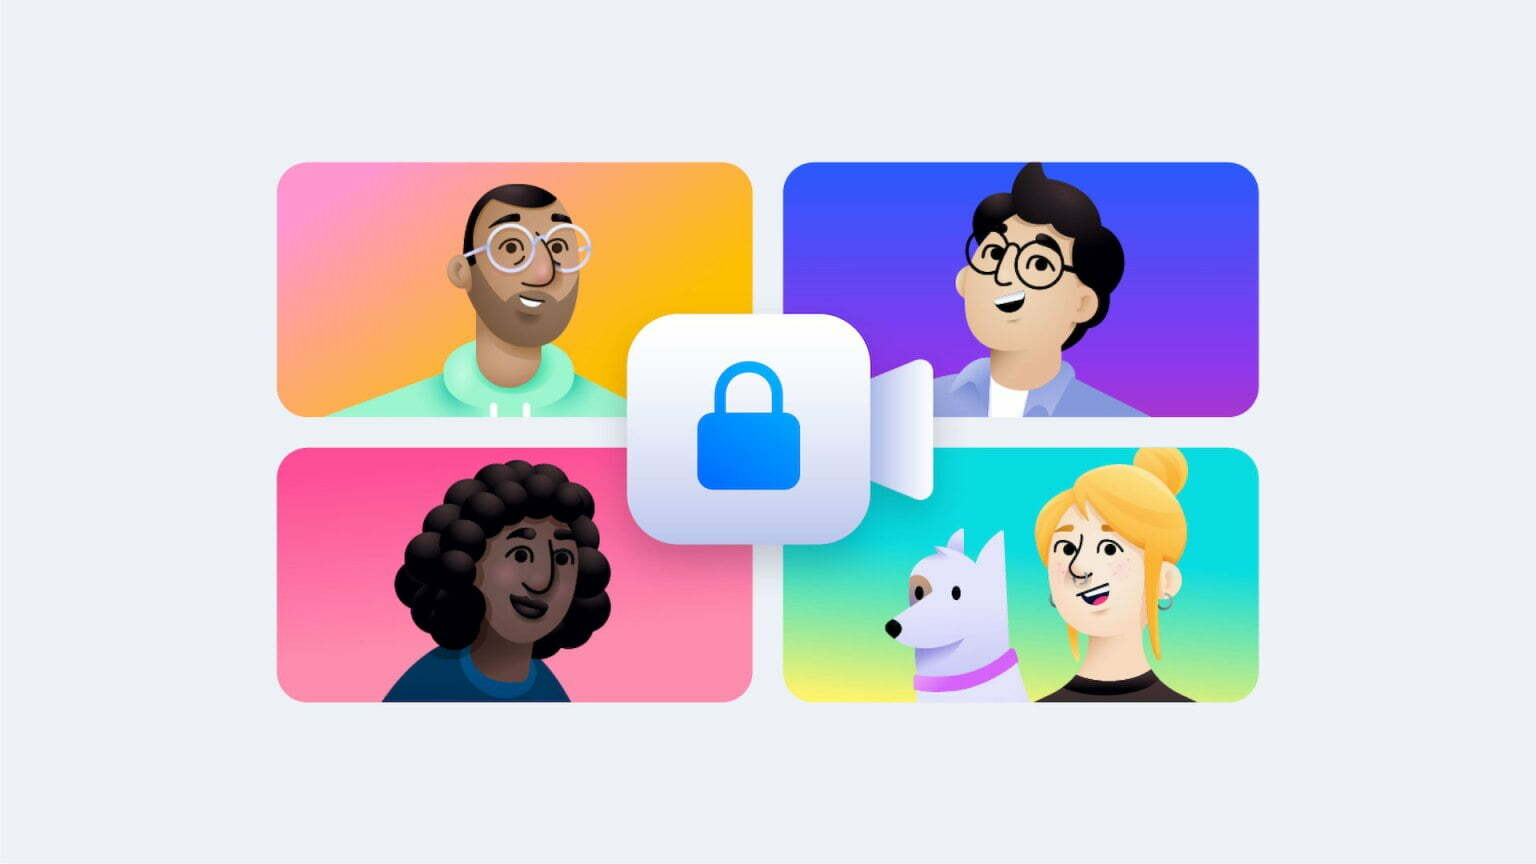 How to use 'Messenger Rooms' Multi-Participant Video Call